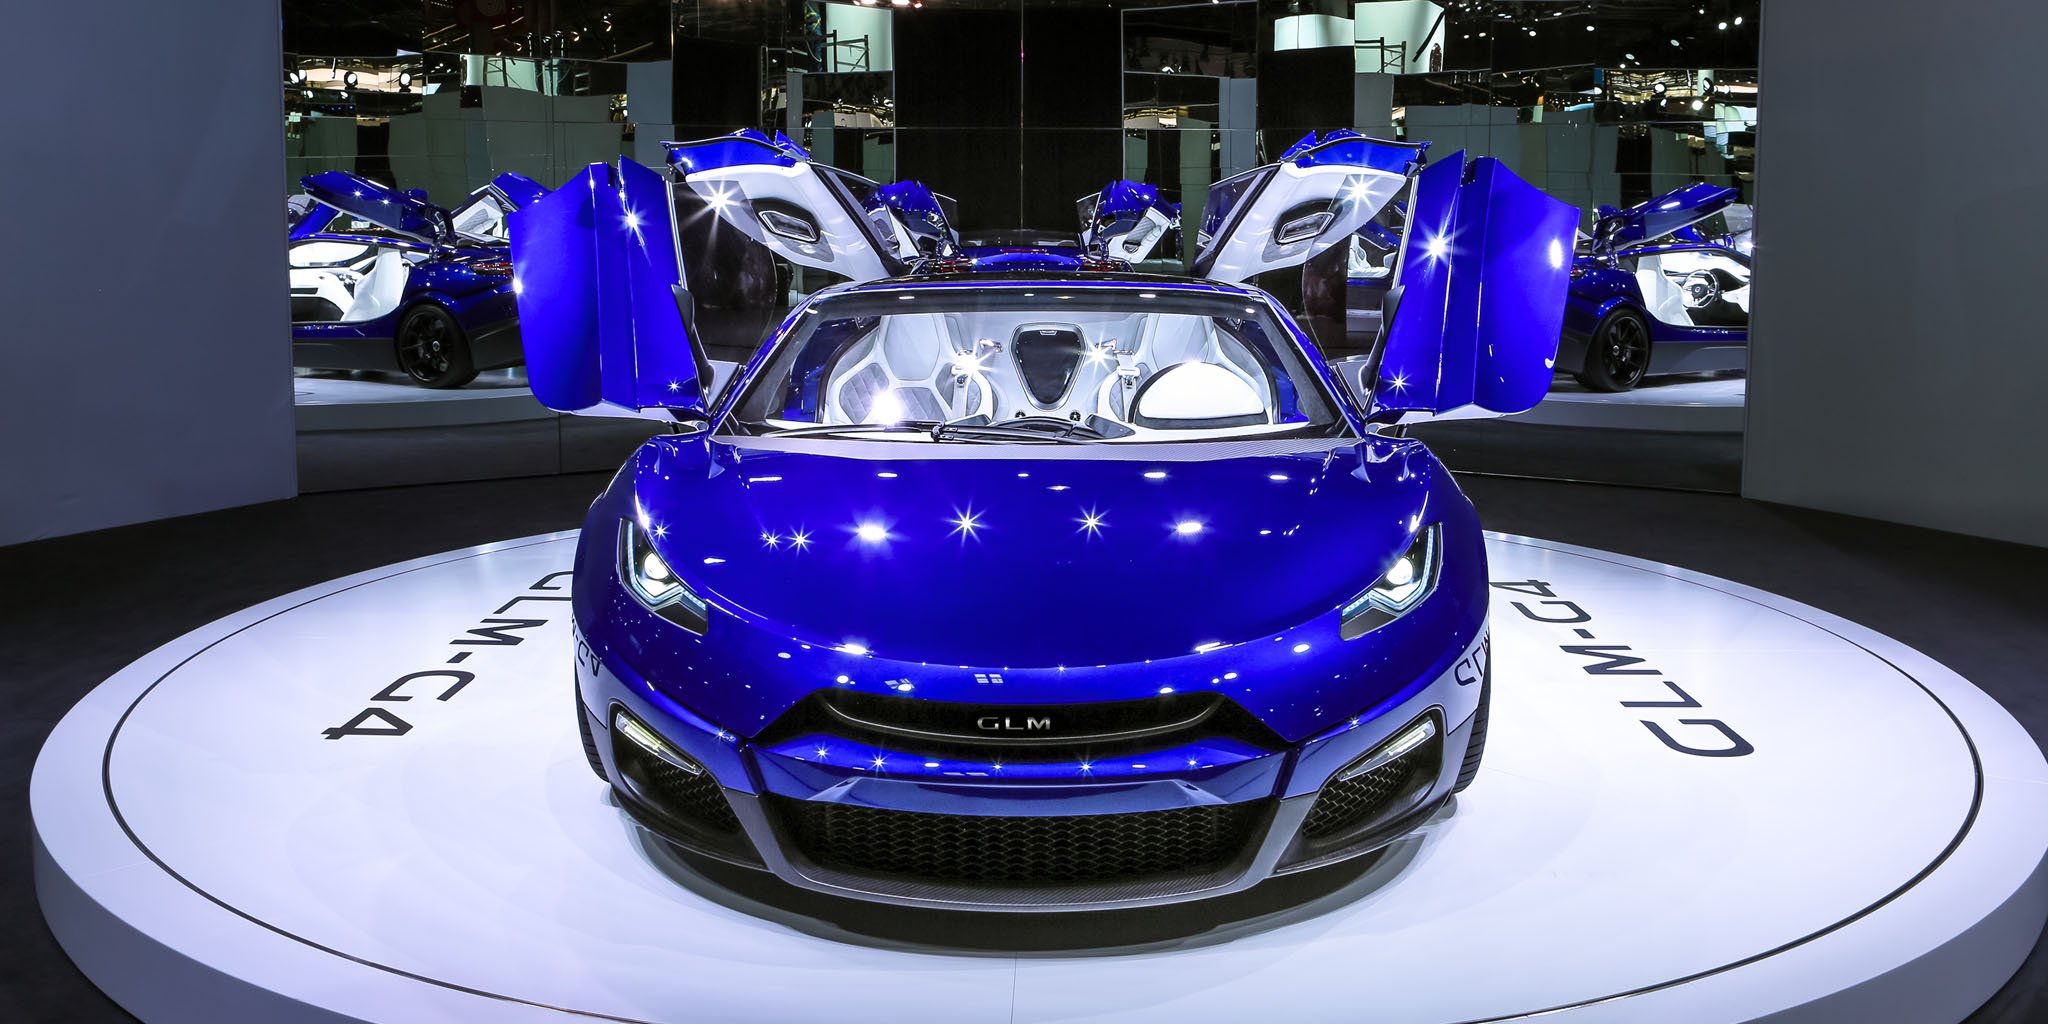 The name perhaps sounds simplistic, however the car's performance is all but! Its powertrain consists of two electric motors with total power output of 400 ...